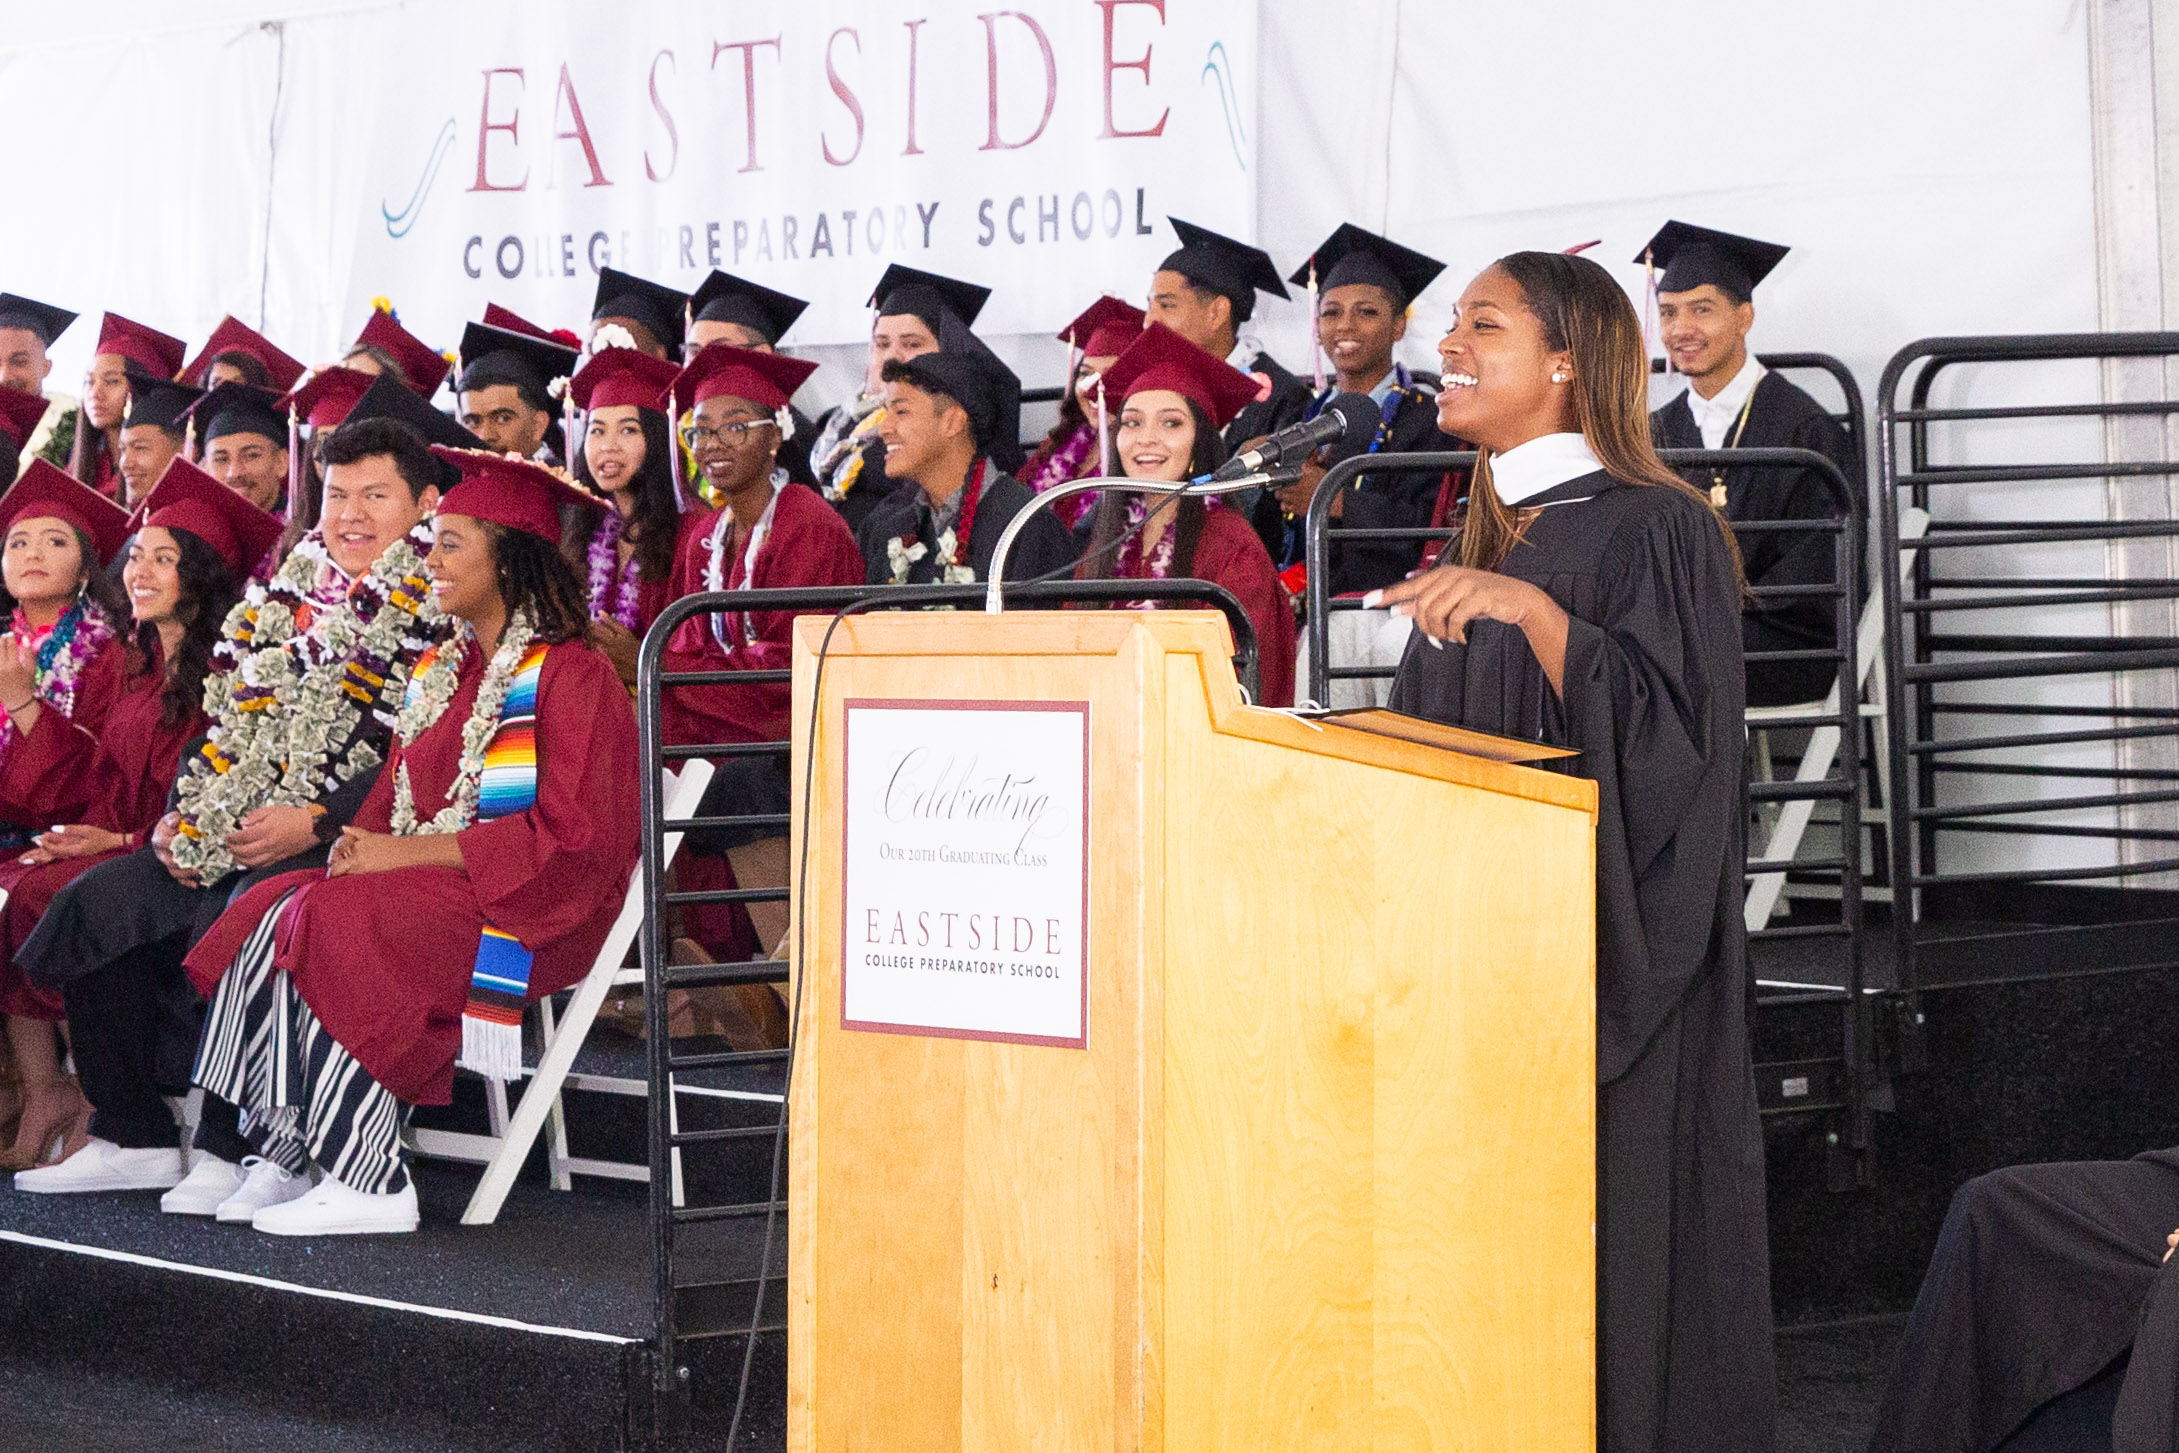 Corine Forward addresses Eastside College Preparatory's 2019 graduating  class on May 31, 2019, about how to use the lessons learned in high school  to thrive in college. Forward, an Eastside 2015 graduate, credits the school's mentoring program for enabling her to head to Columbia University law school in the fall.